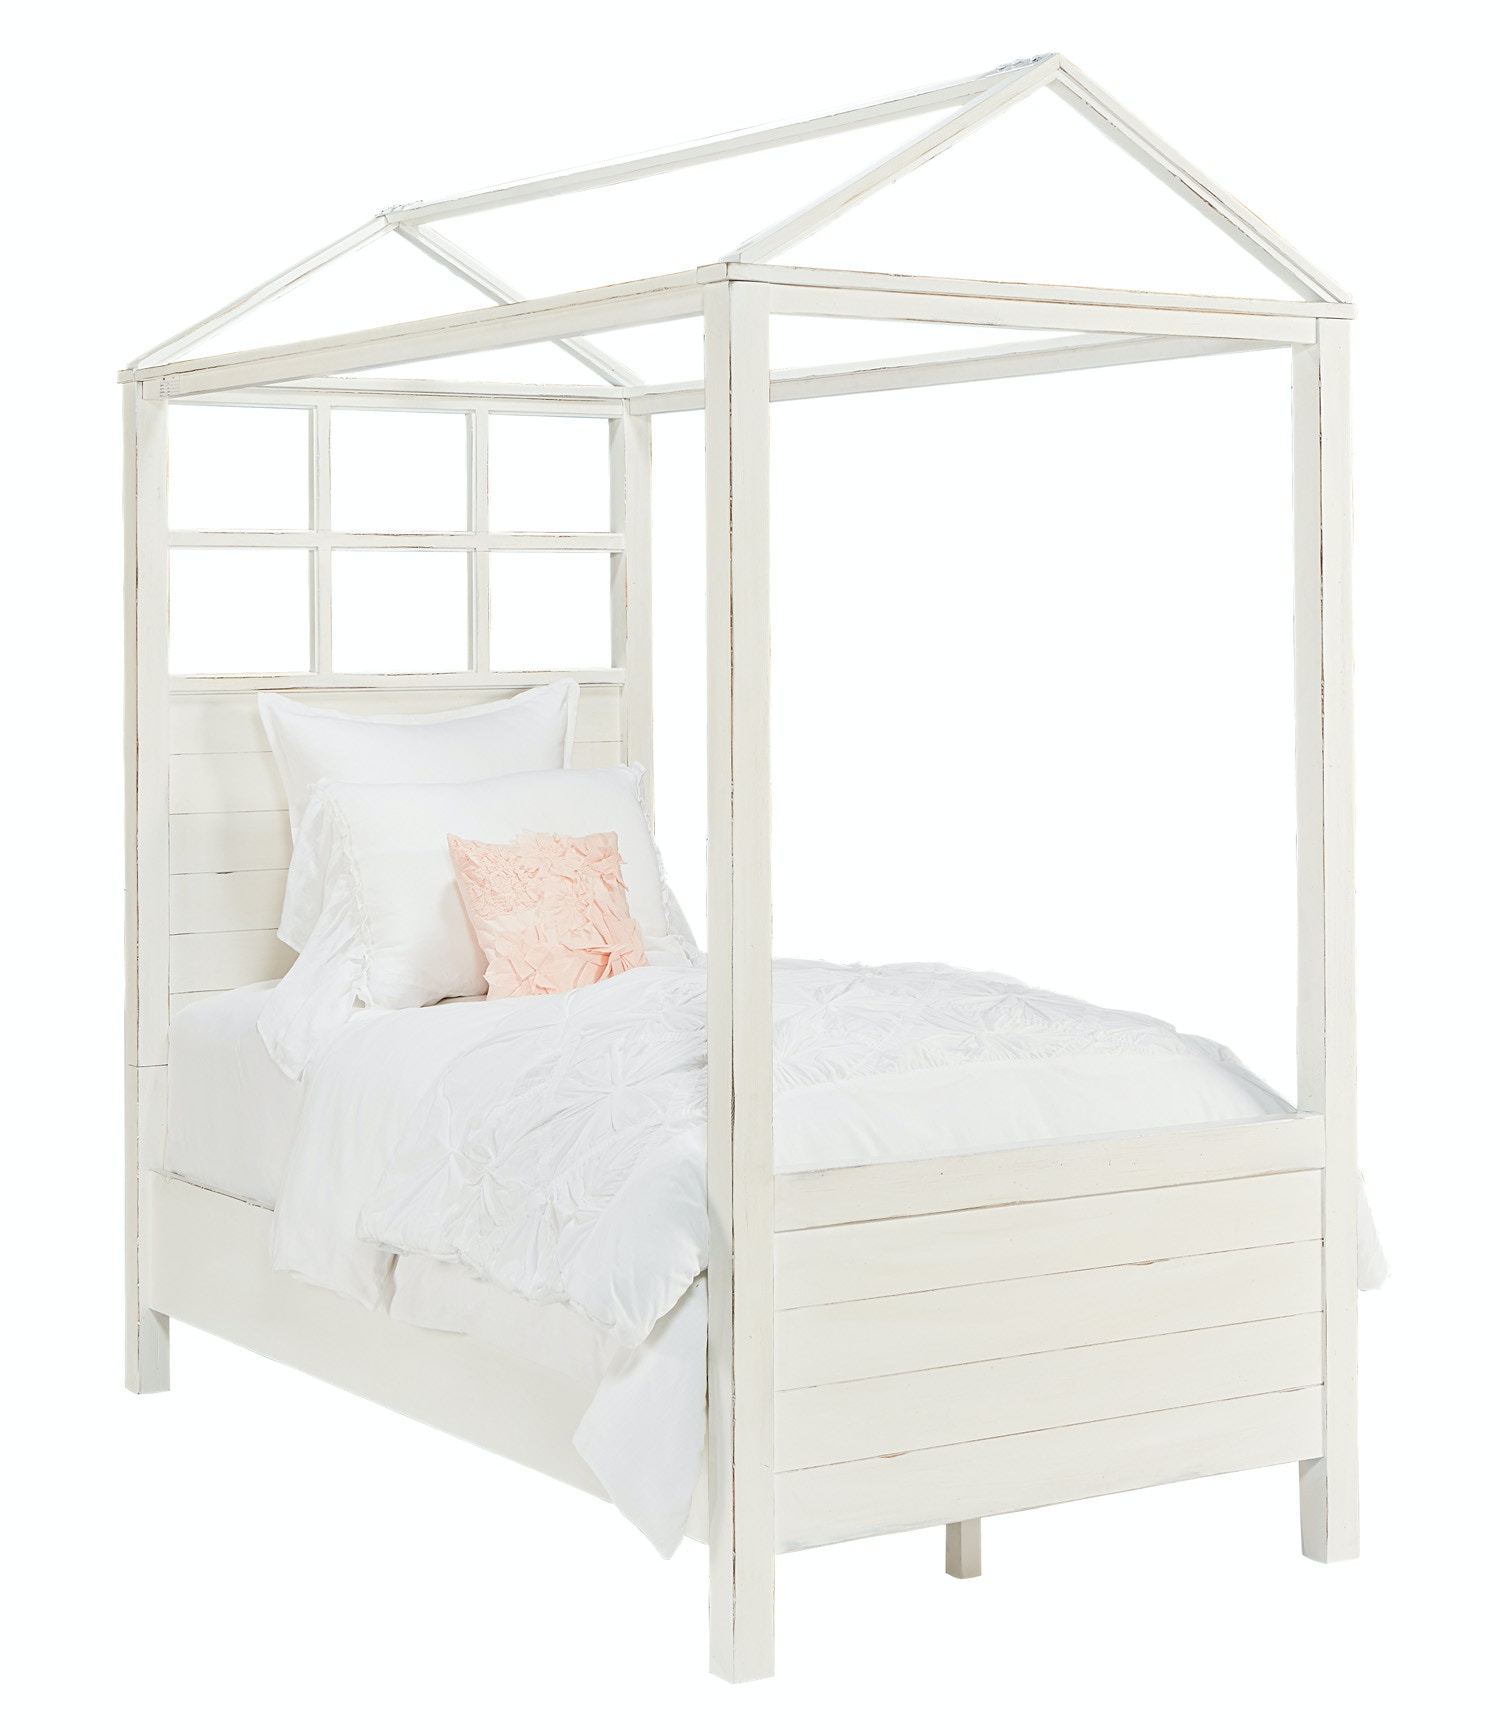 Magnolia Home Playhouse Canopy Bed White - Full 034846  sc 1 st  Furniture Fair & Magnolia Home Youth Playhouse Canopy Bed White - Full 034846 ...